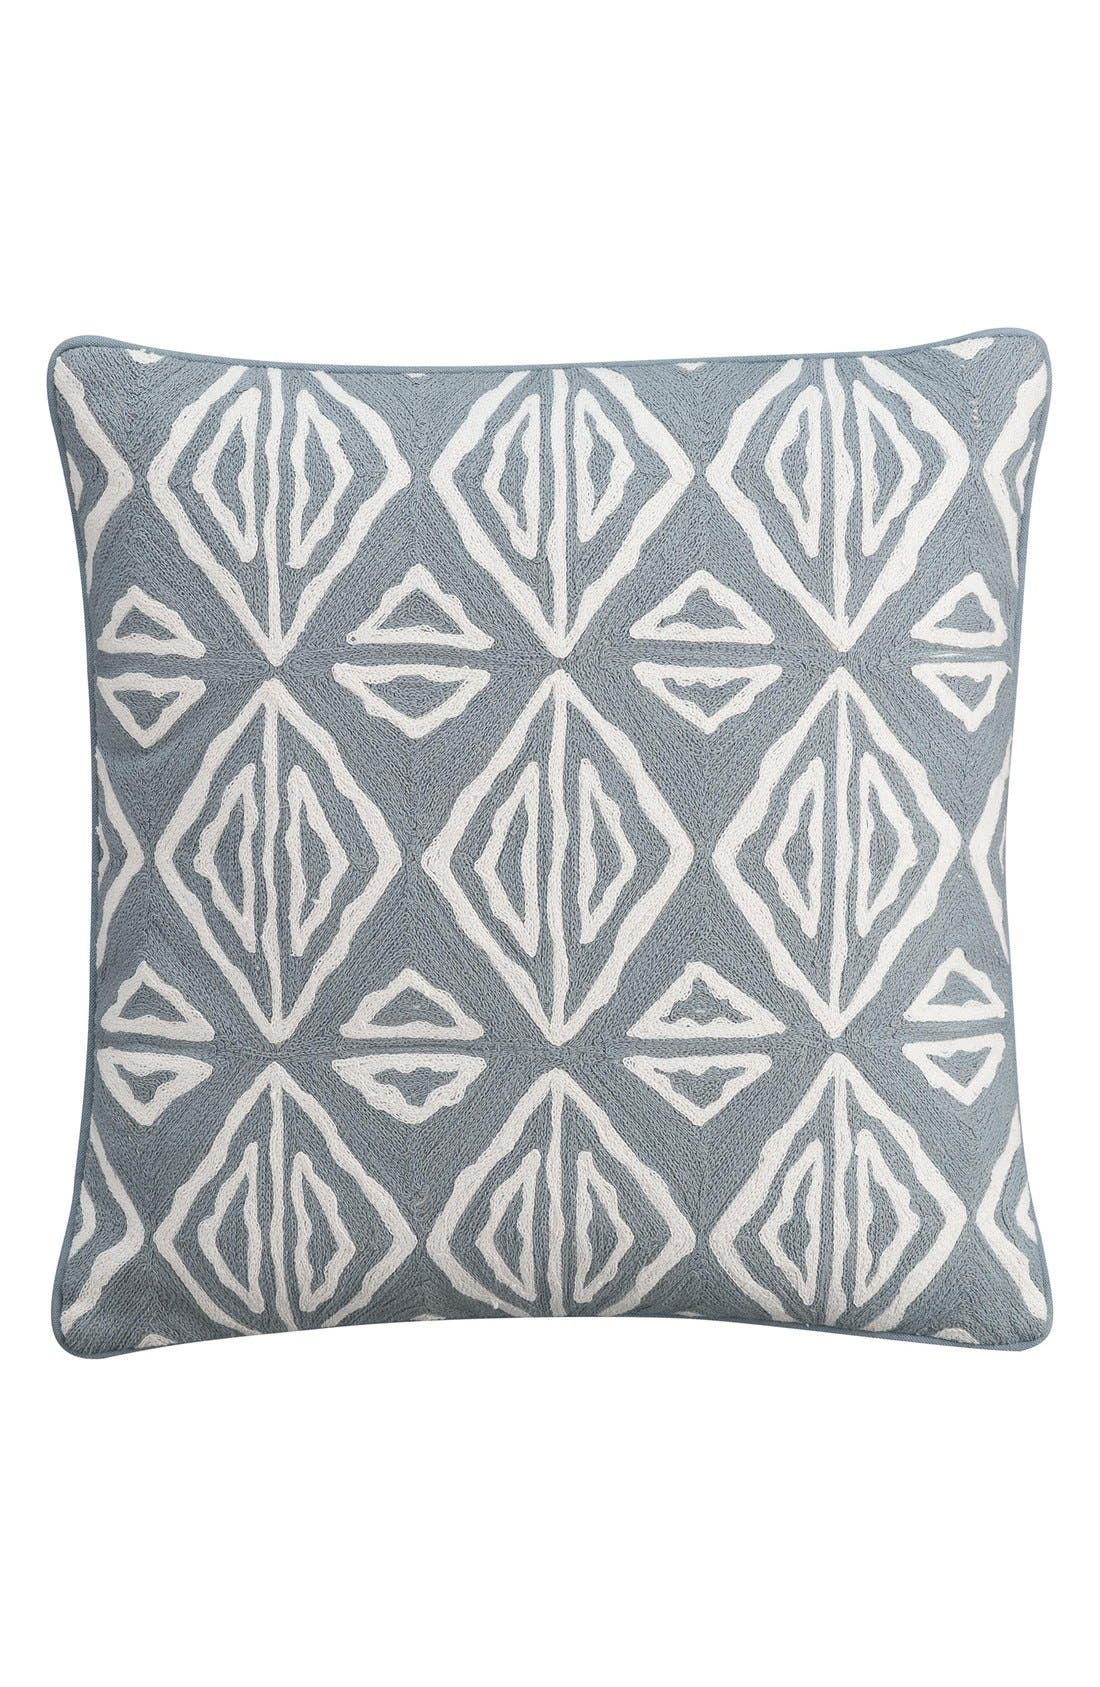 'Moroccan Geo' Crewel Embroidered Pillow,                         Main,                         color, 020